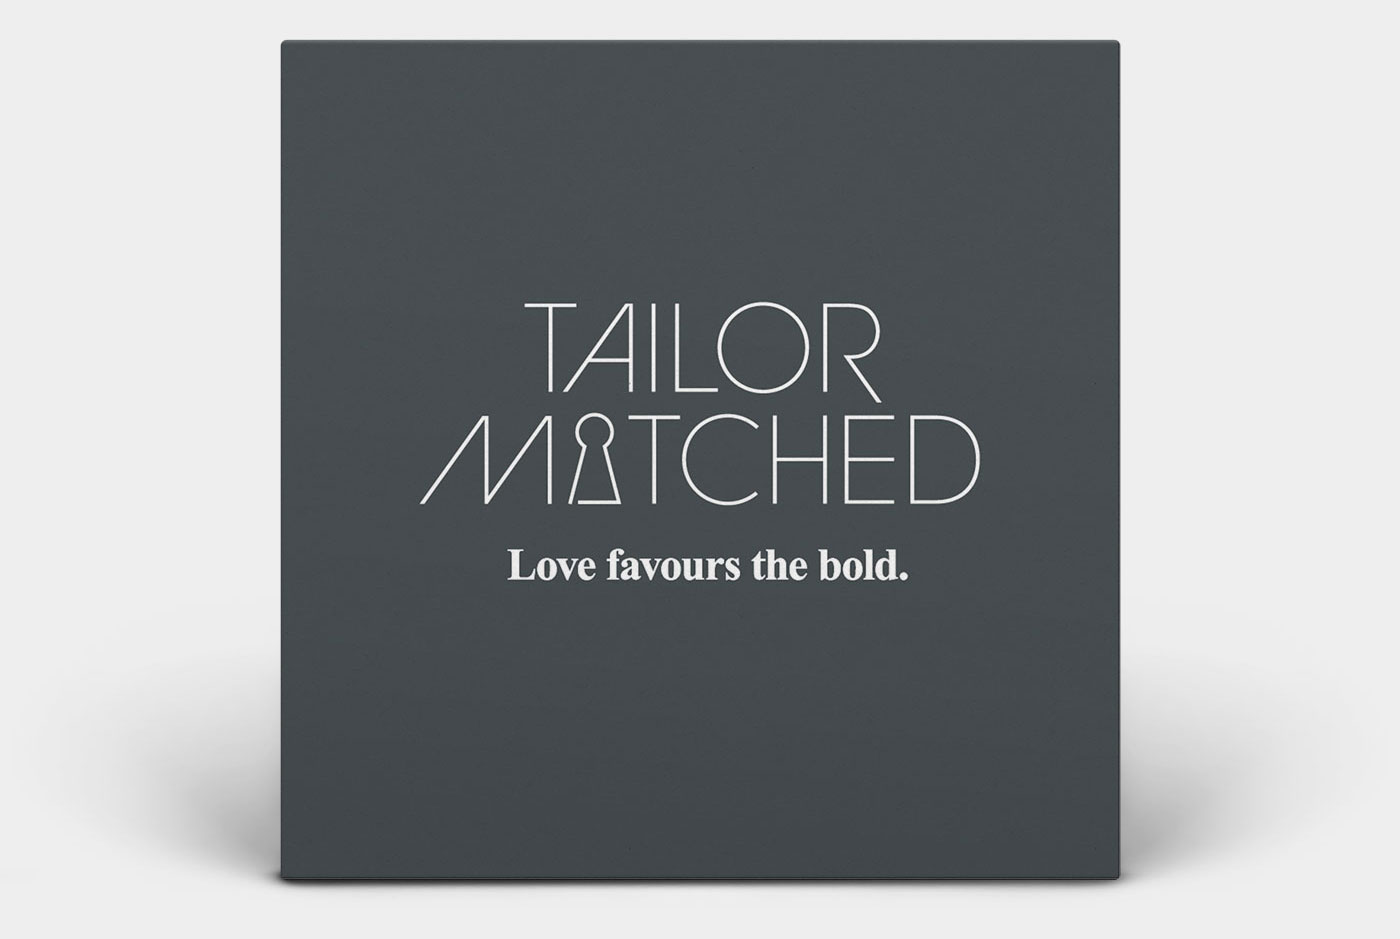 tailor matched love favours the bold